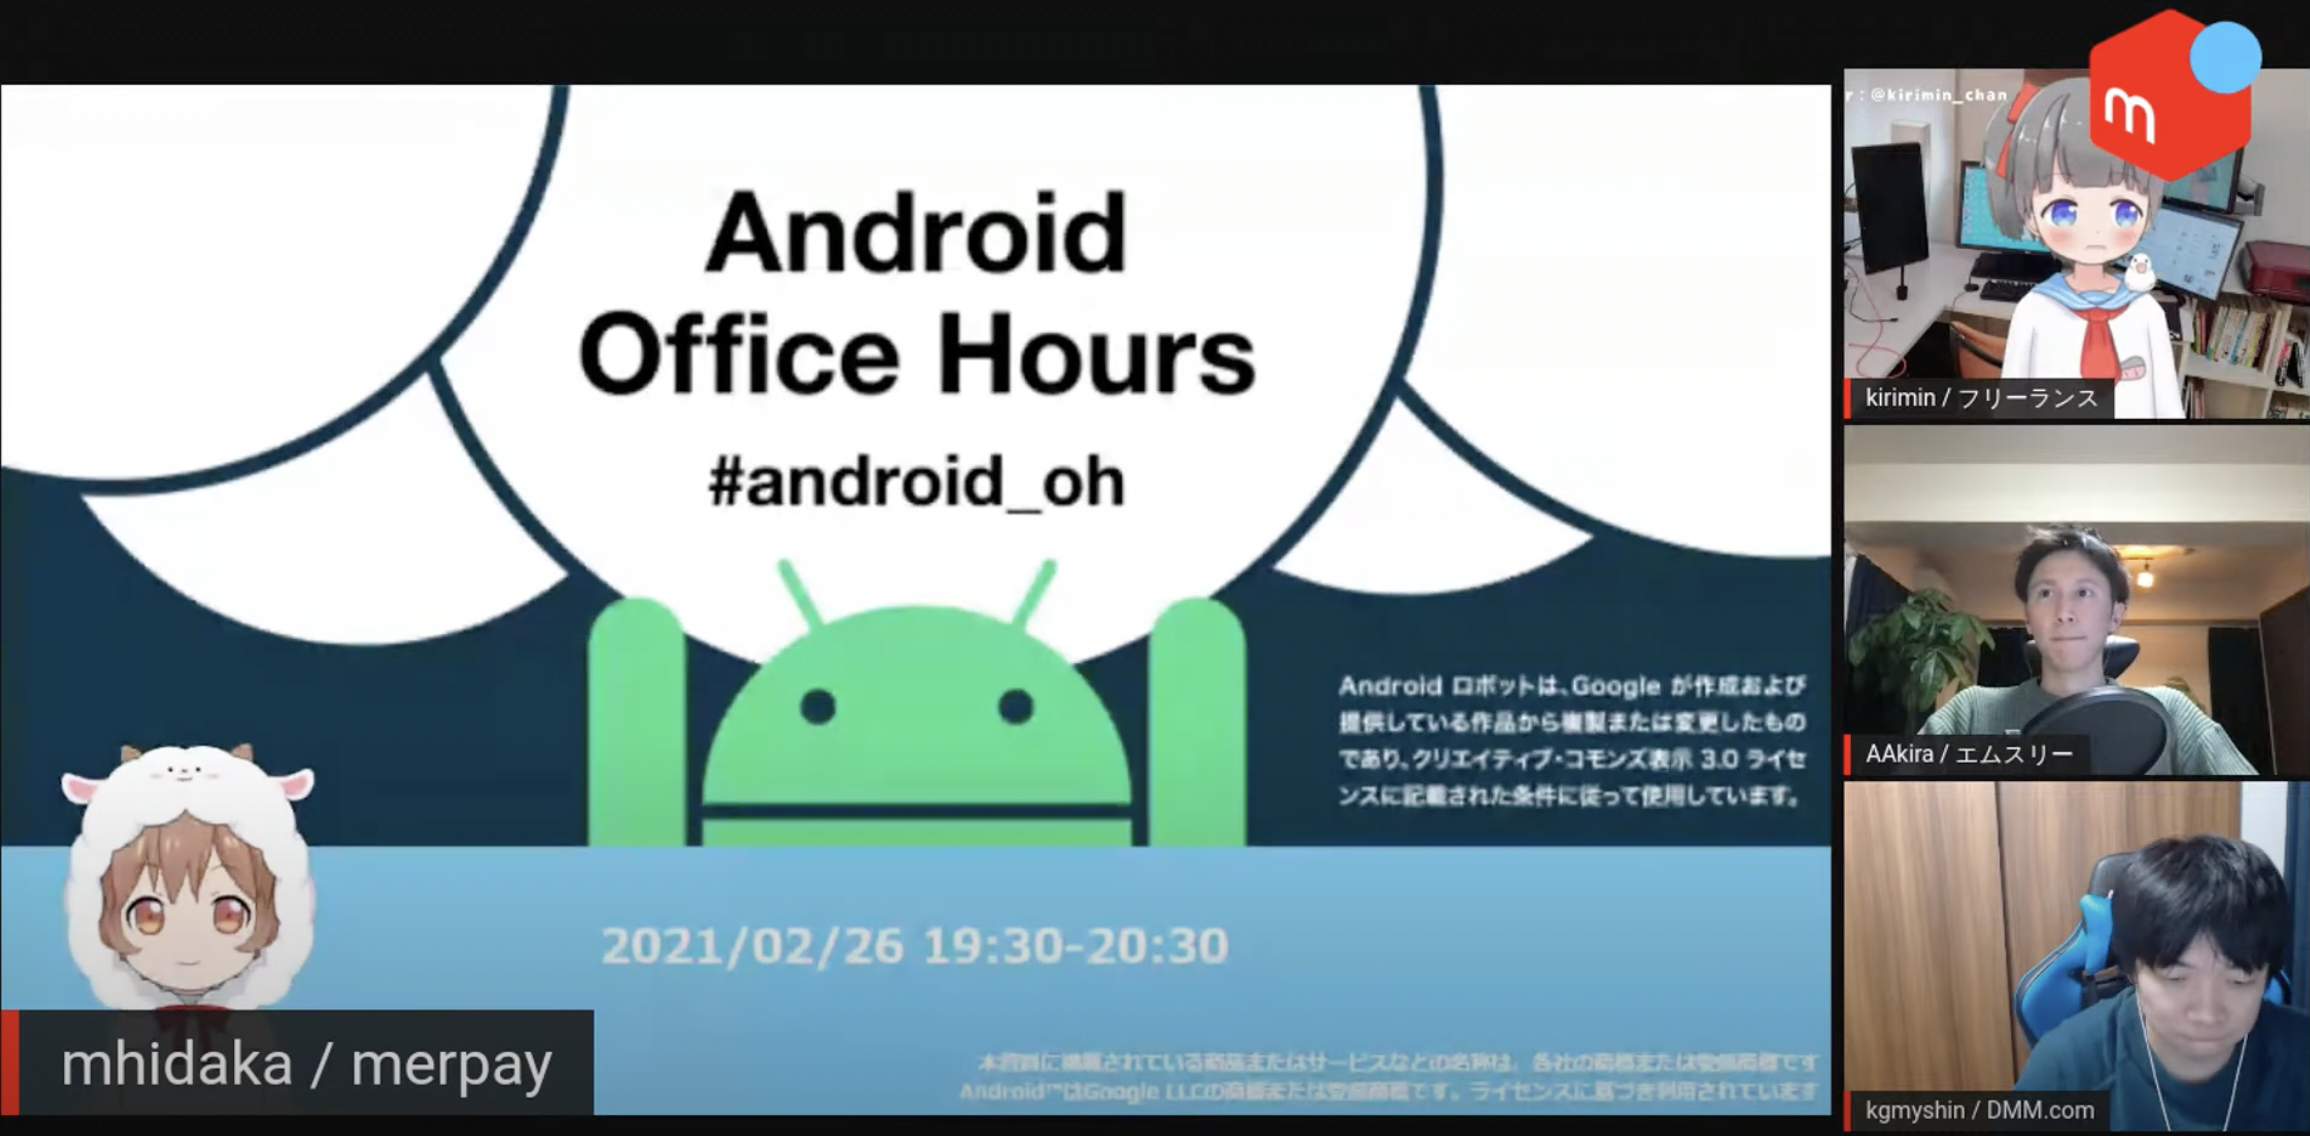 Android Office Hours #3 〜続!Androidエンジニアのキャリアパスについて〜 を開催しました #android_oh